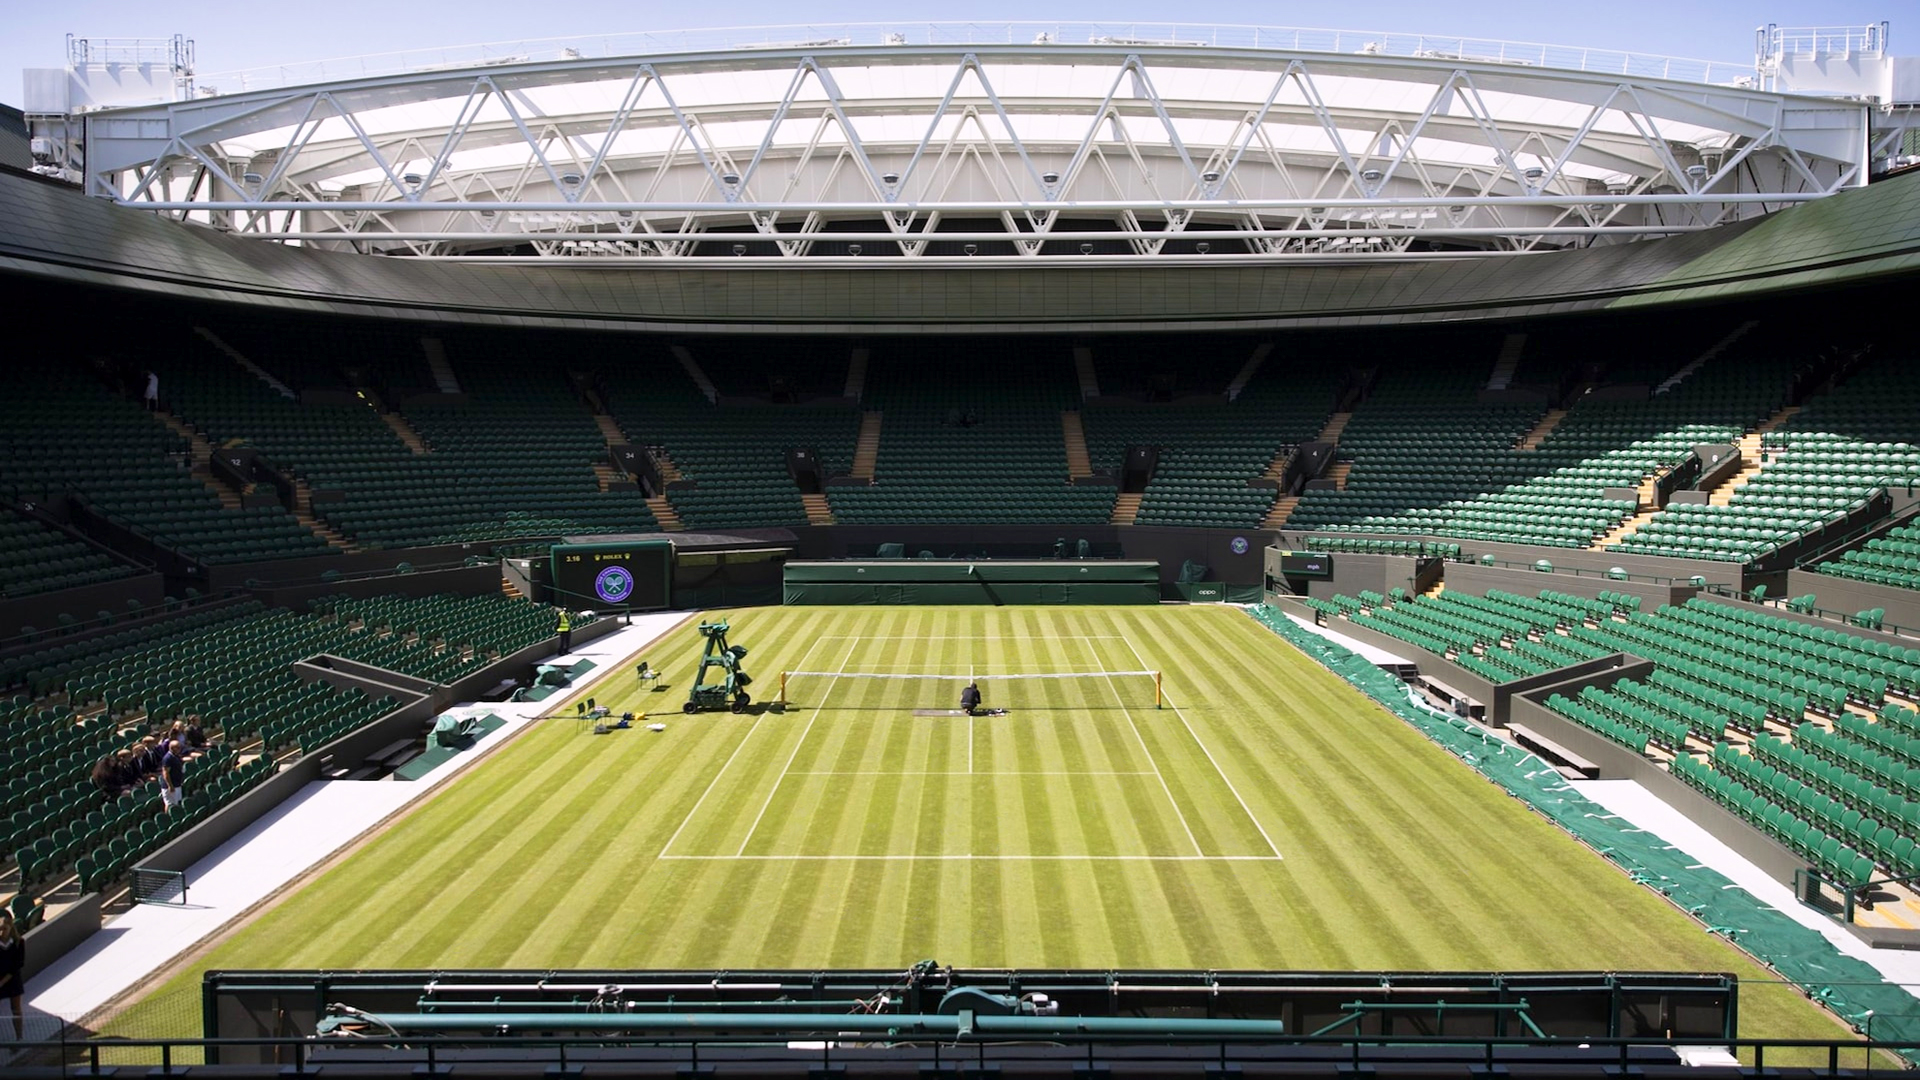 Wimbledon No. 1 Court. Virtual background to use on Zoom, Microsoft Teams, Skype, Google Meet, WebEx or any other compatible app.